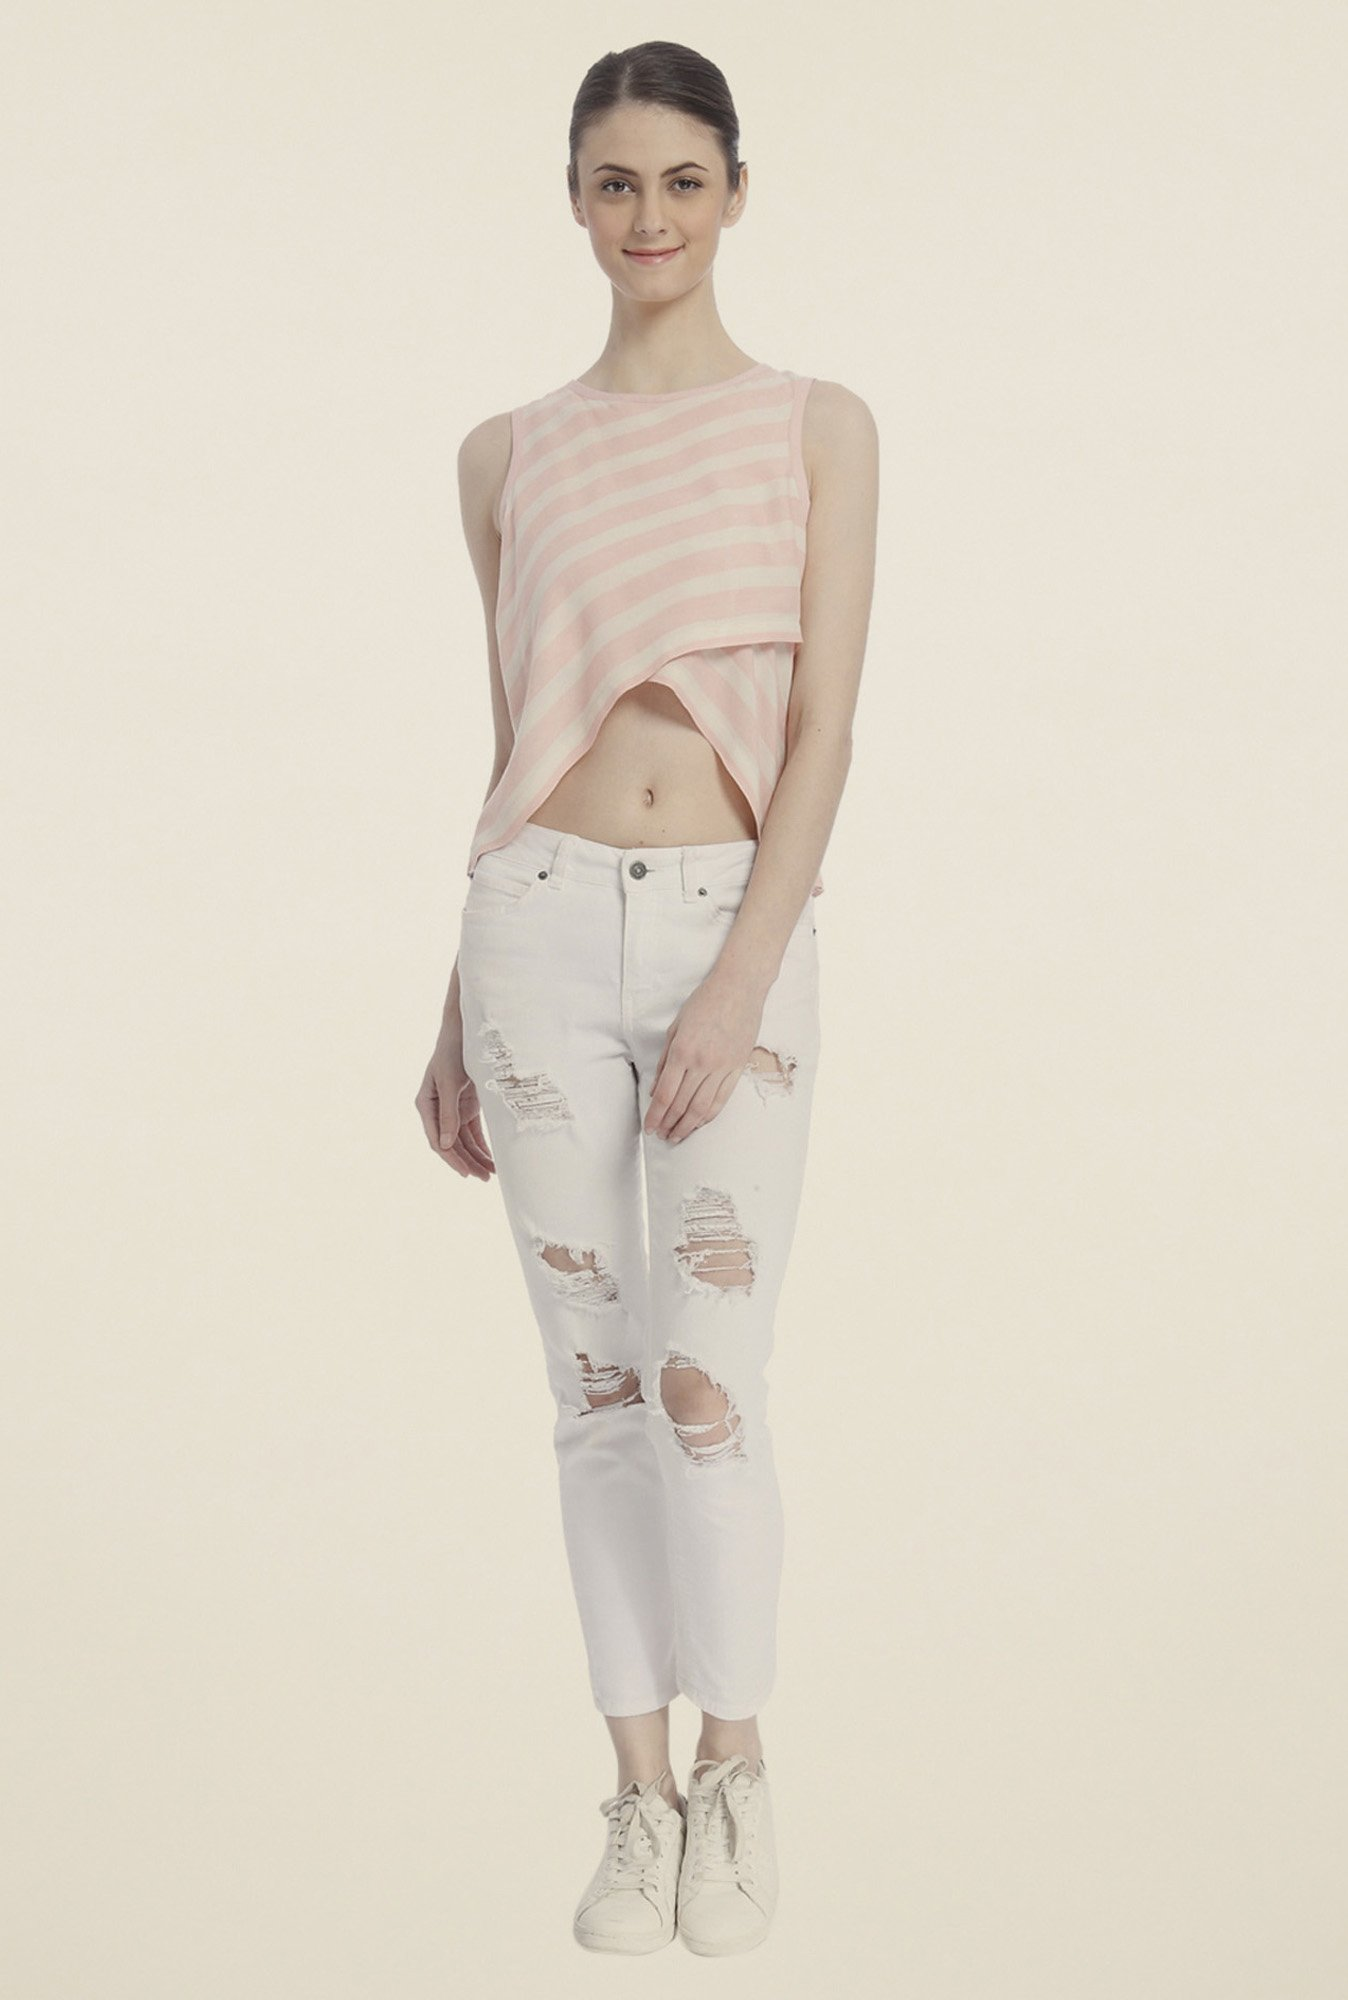 Vero Moda Peach & White Striped Top